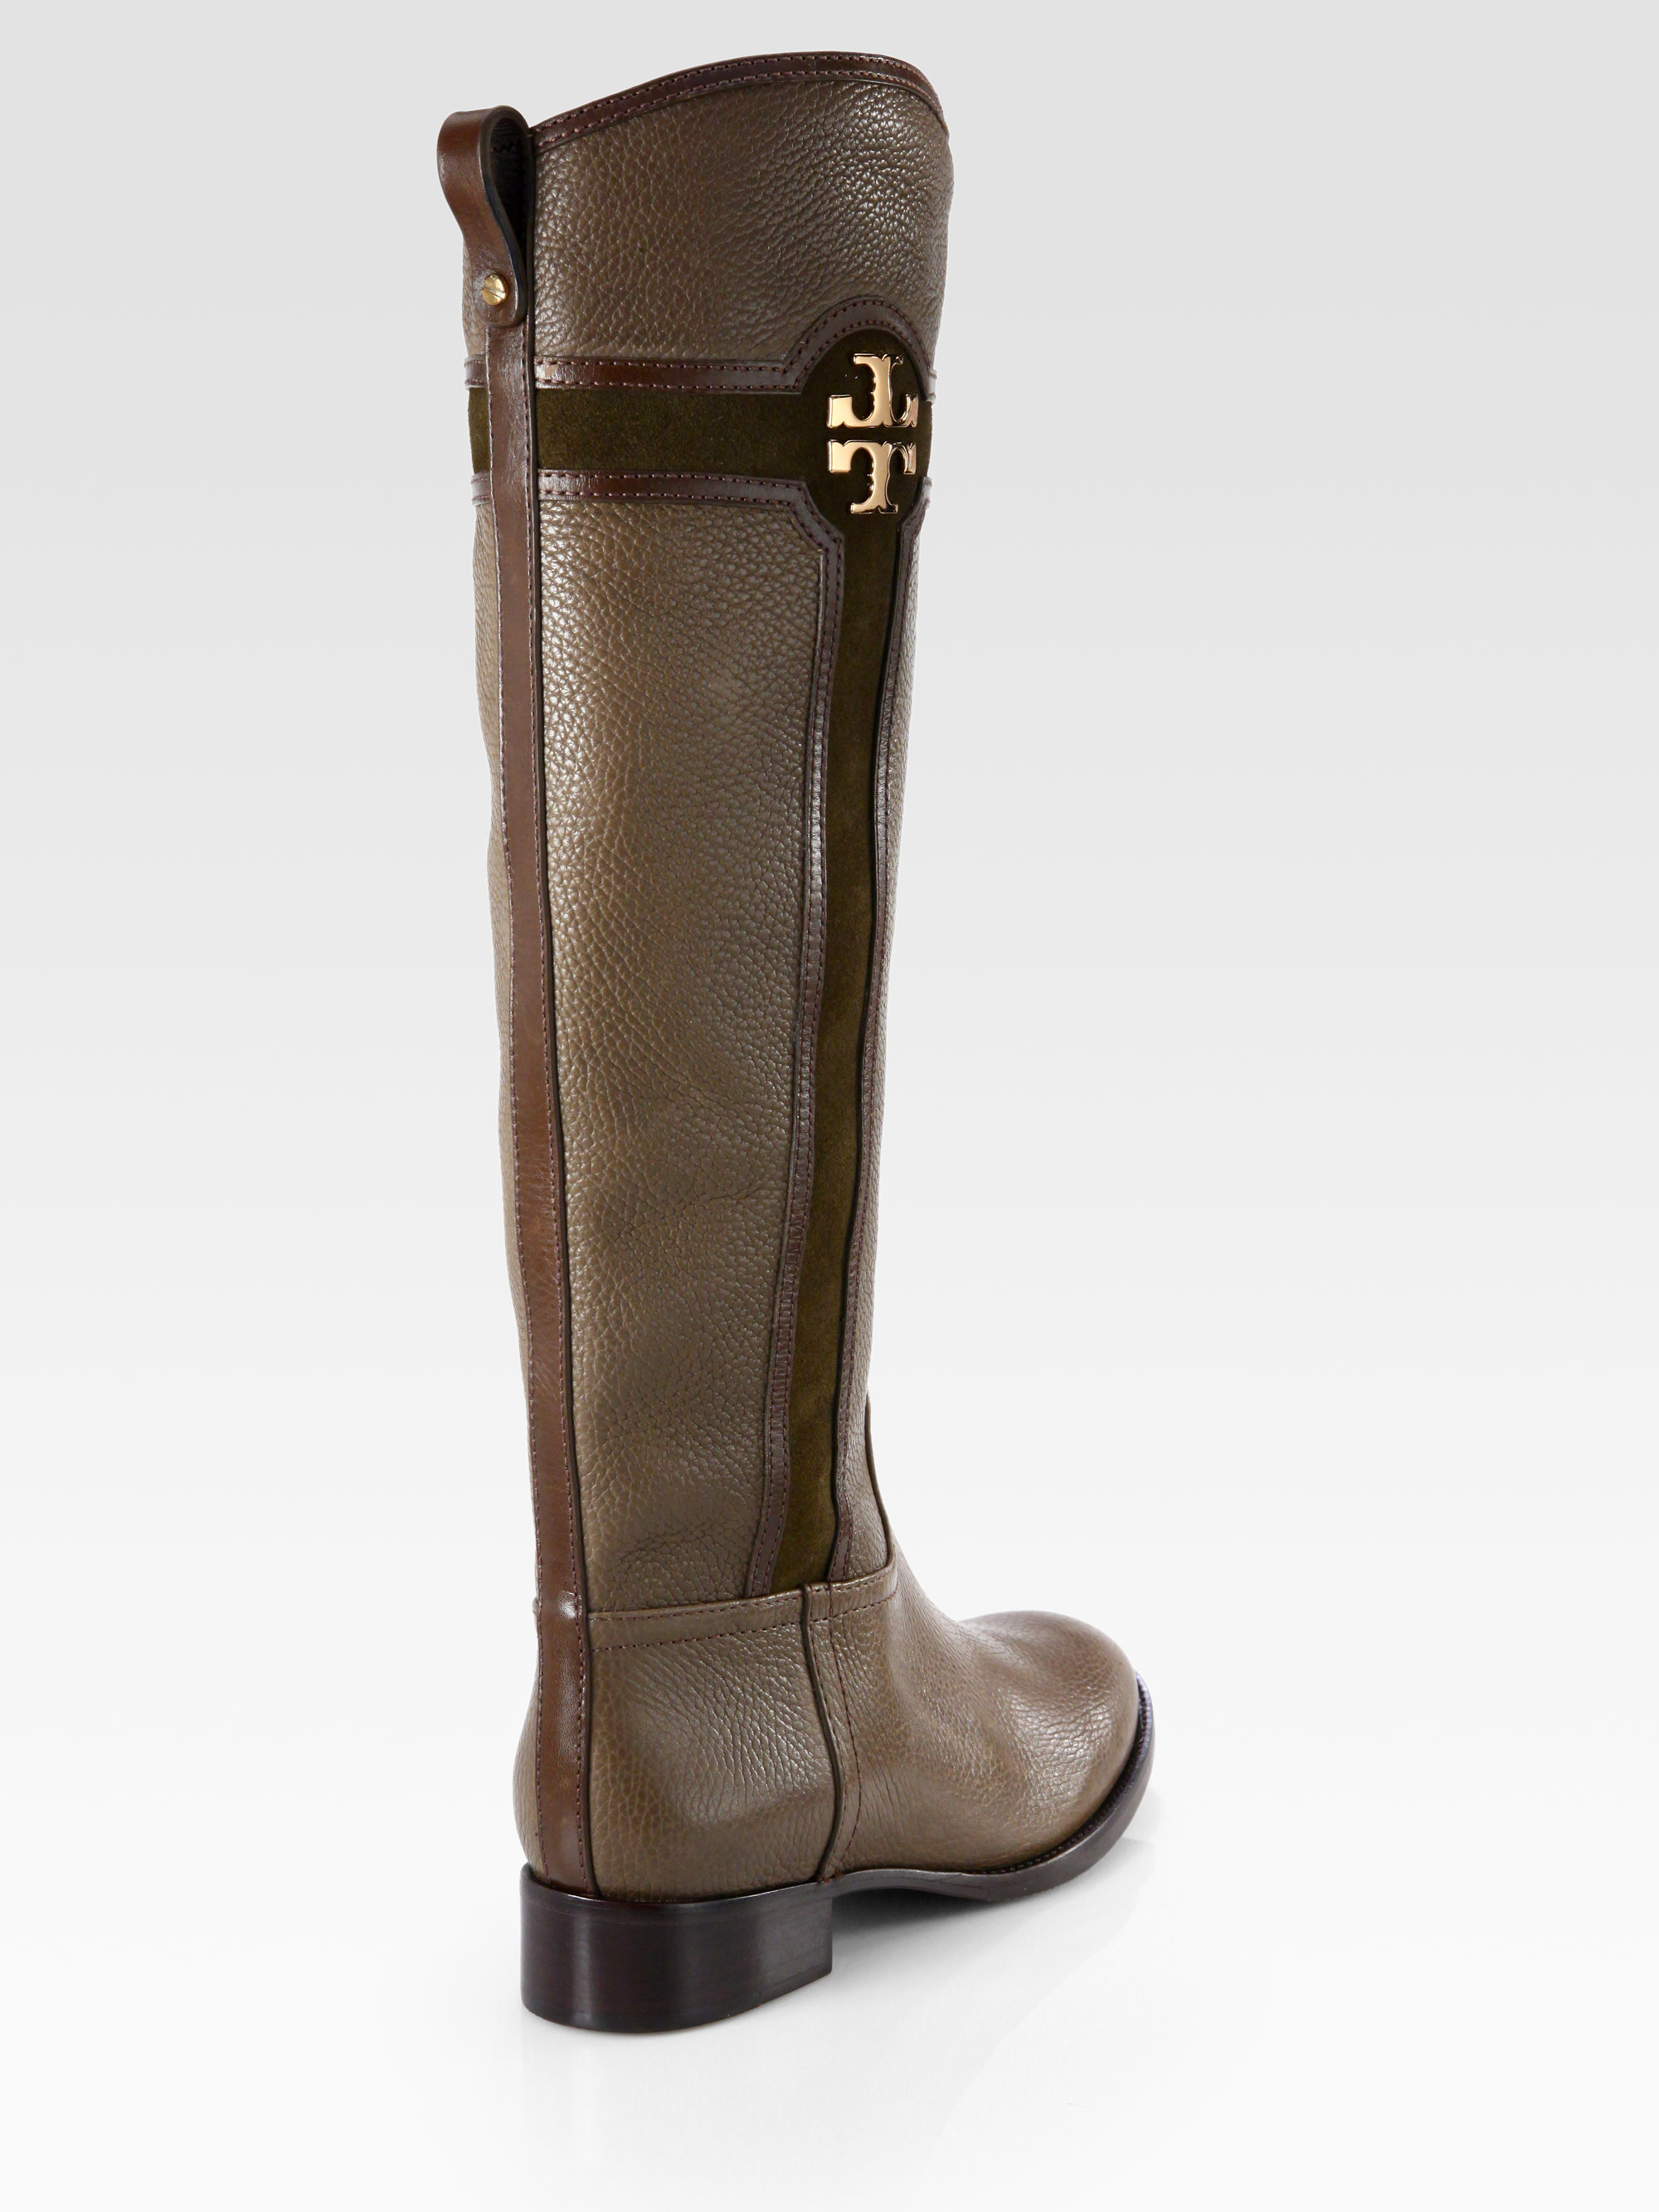 c98e4f7ab26d2f Lyst - Tory Burch Alaina Leather and Suede Logo Kneehigh Boots in Brown